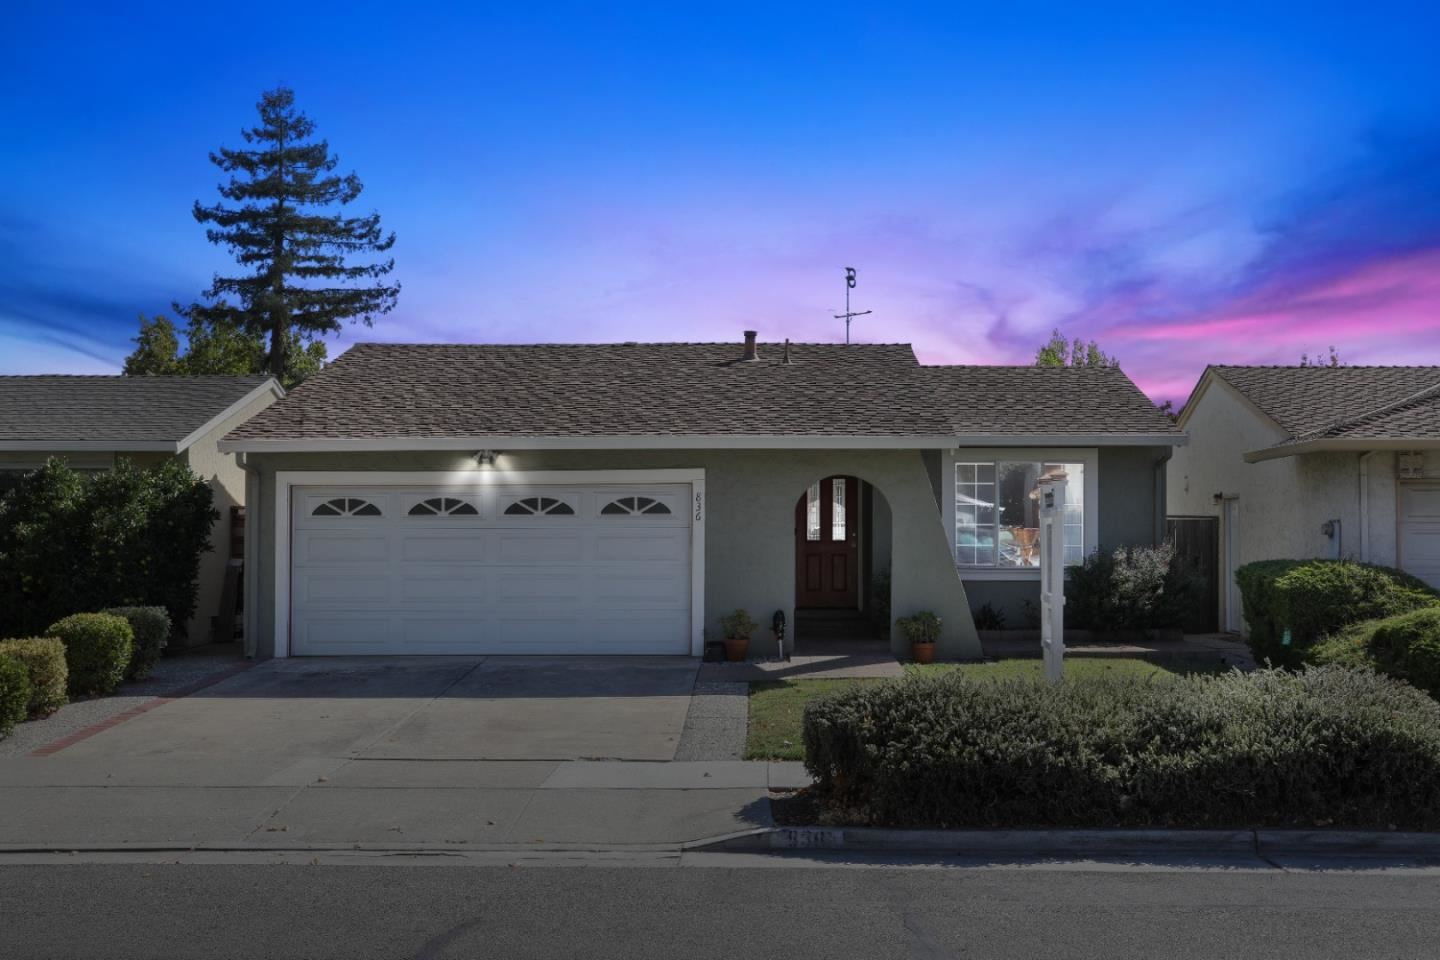 Photo for 836 West Sunnyoaks Avenue, CAMPBELL, CA 95008 (MLS # ML81864862)